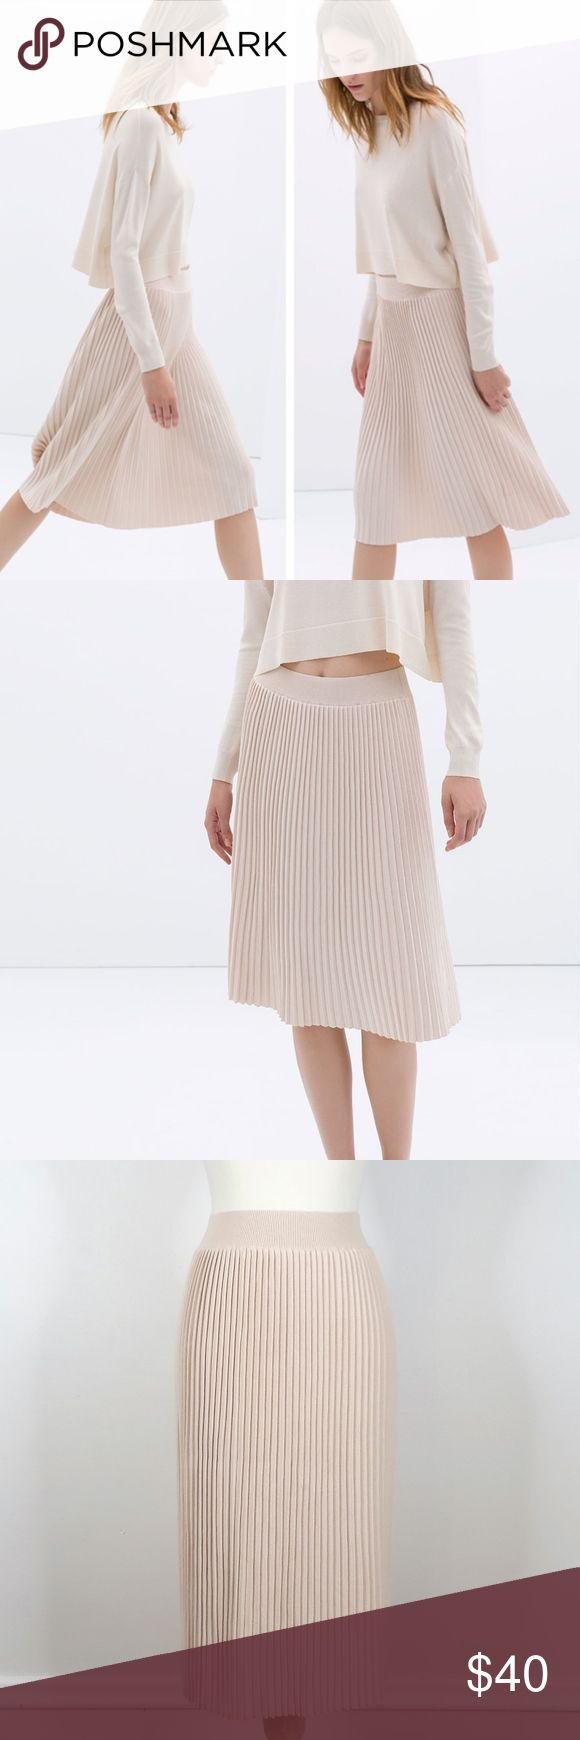 """NWT $80 ZARA KNIT New with tags and no defects.  Style name: Fine Pleat Midi Skirt.   Light pink blush nude color, accordion pleated, hits below knee, medium weight stretch knit.  65% viscose rayon / 35% nylon. Approximately 11.25"""" across at top of waistband and 27.5"""" long along side.   Retails for $80.  One light pink available in size medium.. Black sold out.  Automatically reduce price 20% for 3+ bundles. Zara Skirts Midi"""